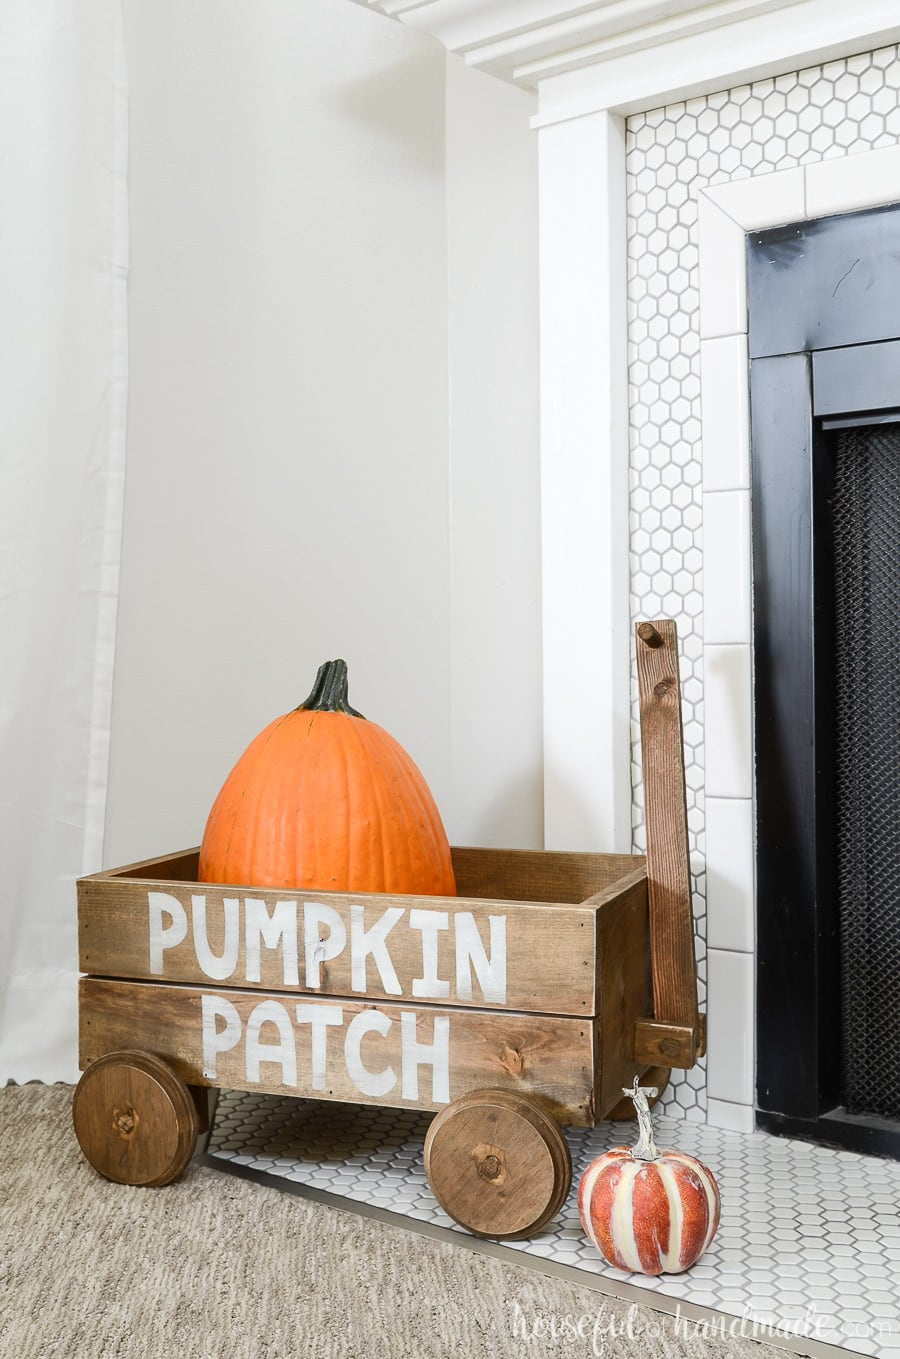 Aged wood wagon decor with pumpkin patch design on the side for fall fireplace decor.